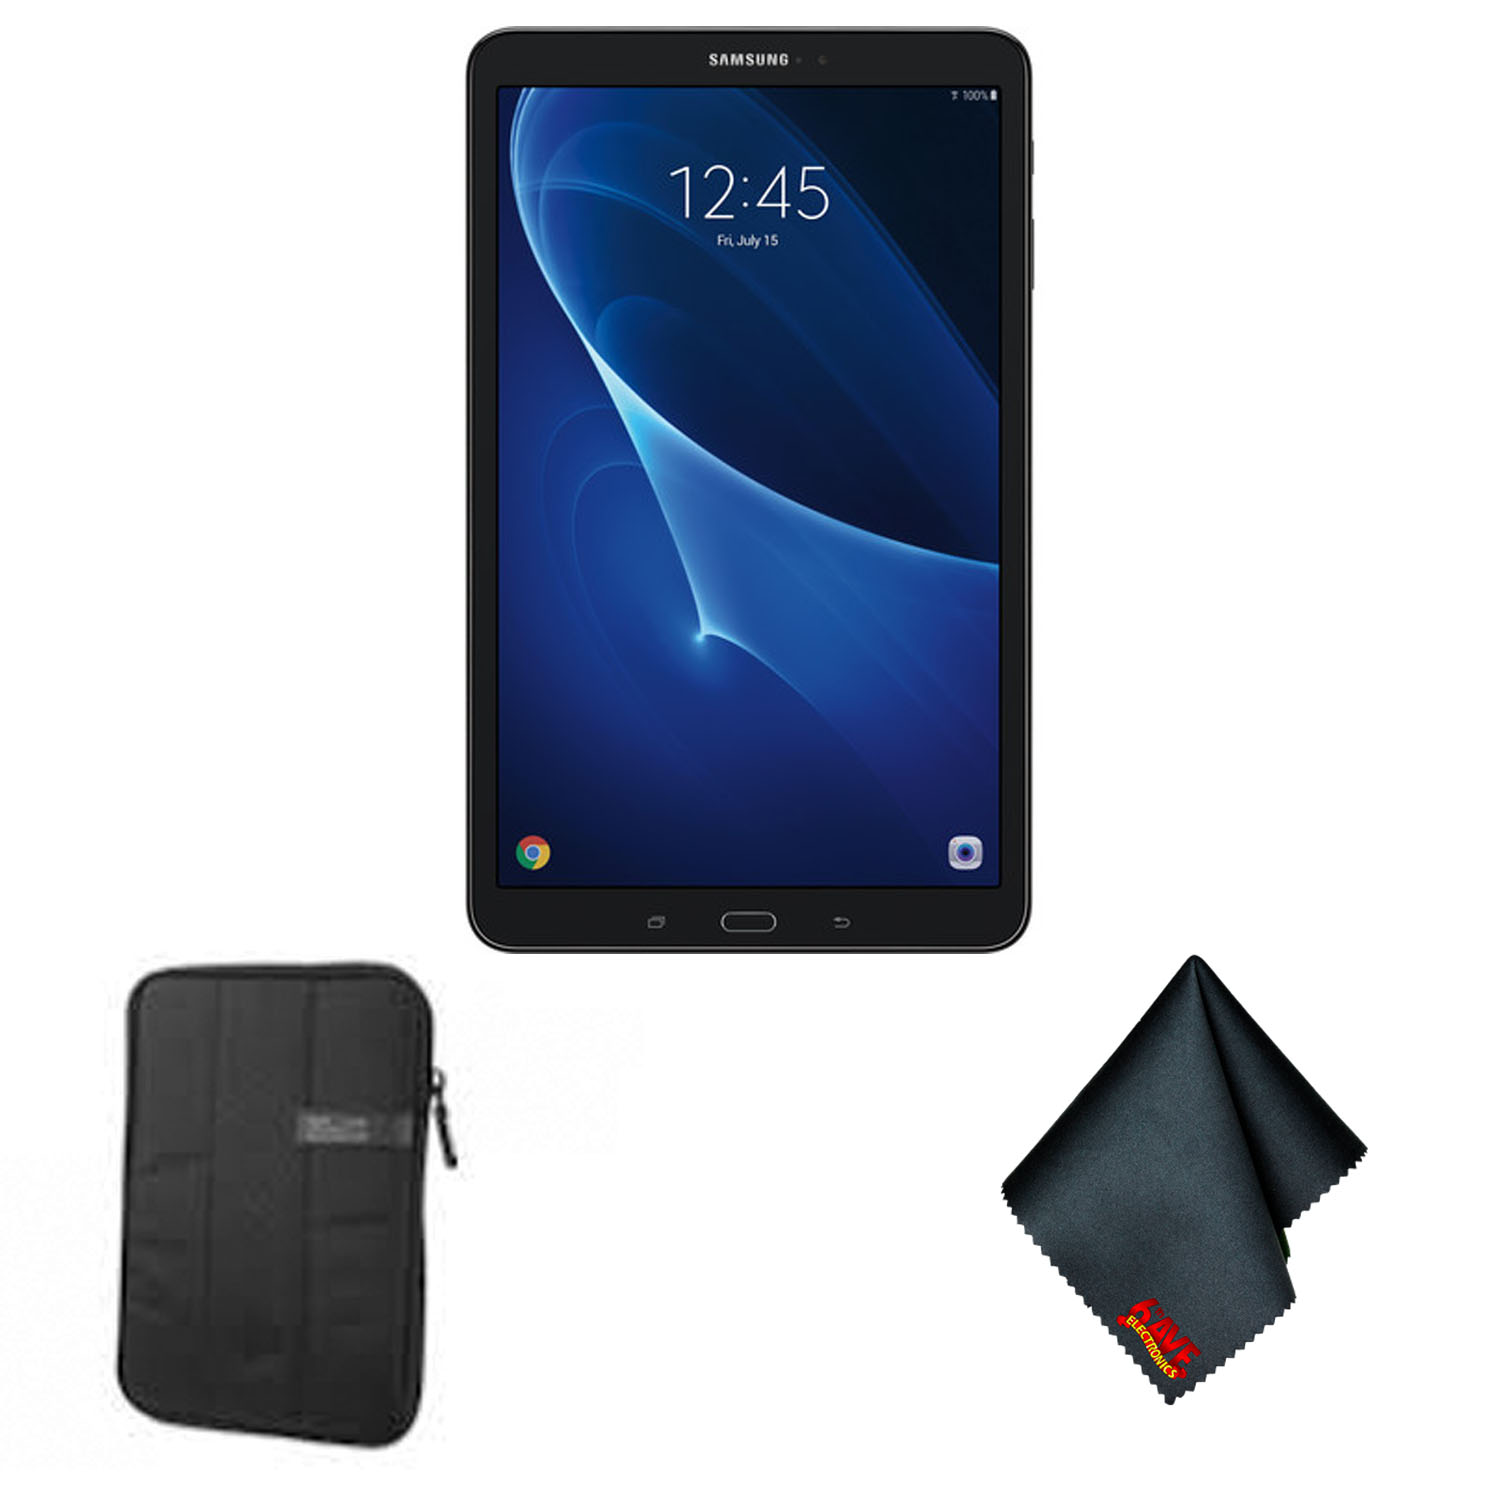 Samsung Galaxy Tab A T580 10.1-Inch Touchscreen 16 GB Tablet (2 GB Ram, Wi-Fi, Android OS, Black) - Tablet Starter Bundle